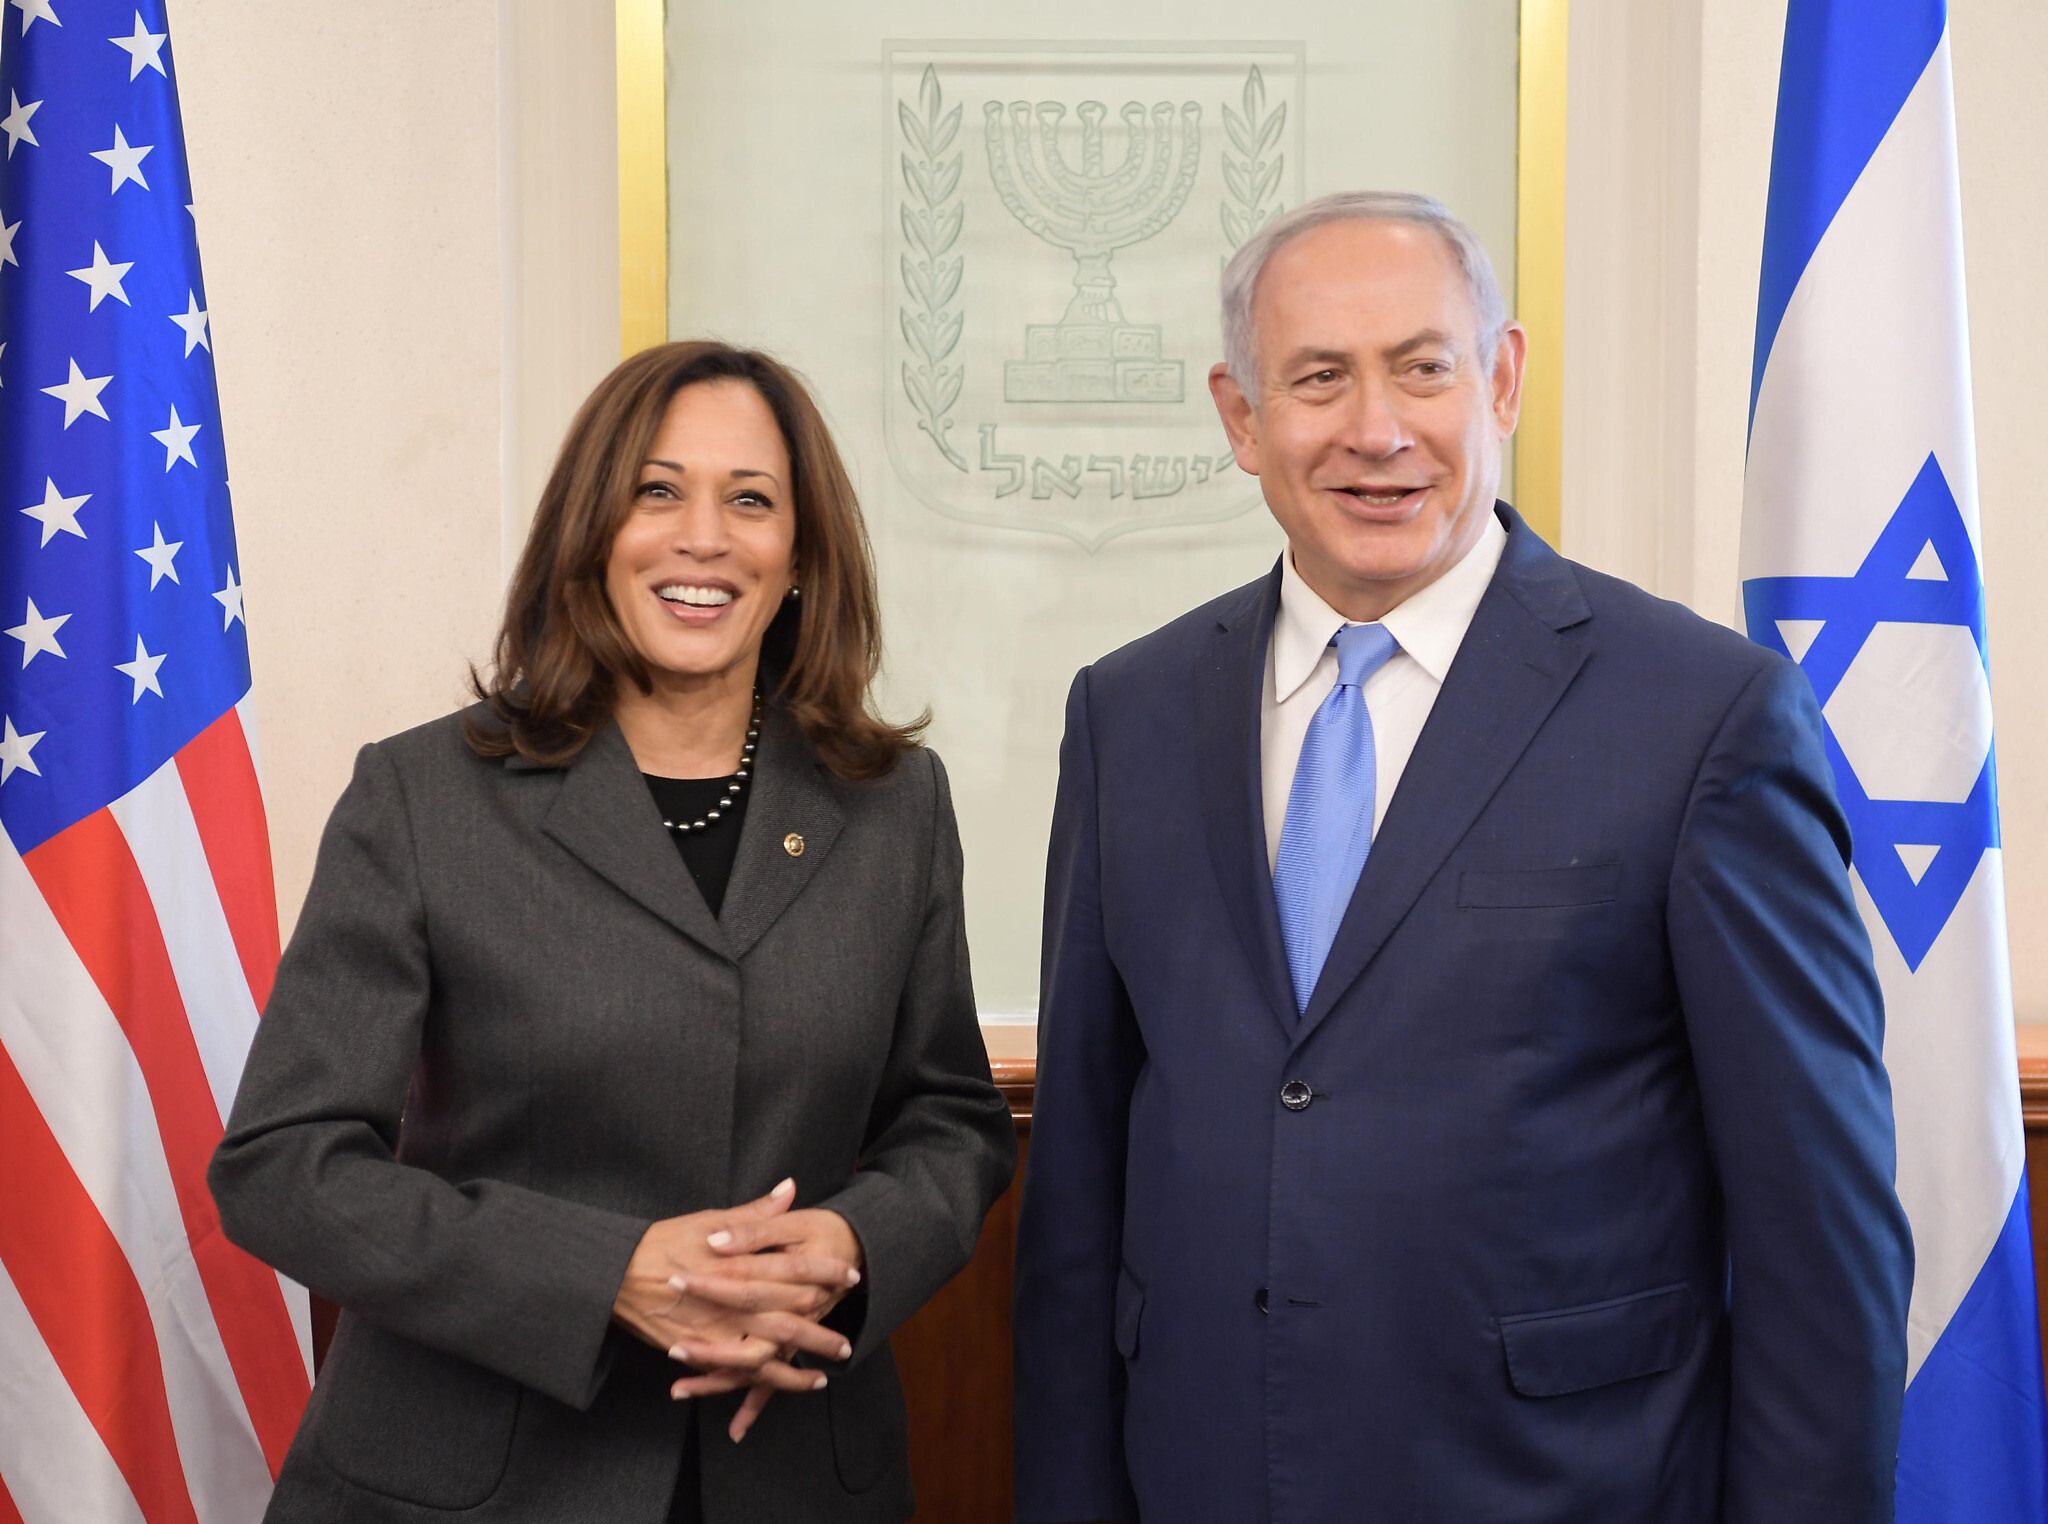 Netanyahu Speaks To Harris About Vaccination, Iran Deal and ICC Investigation